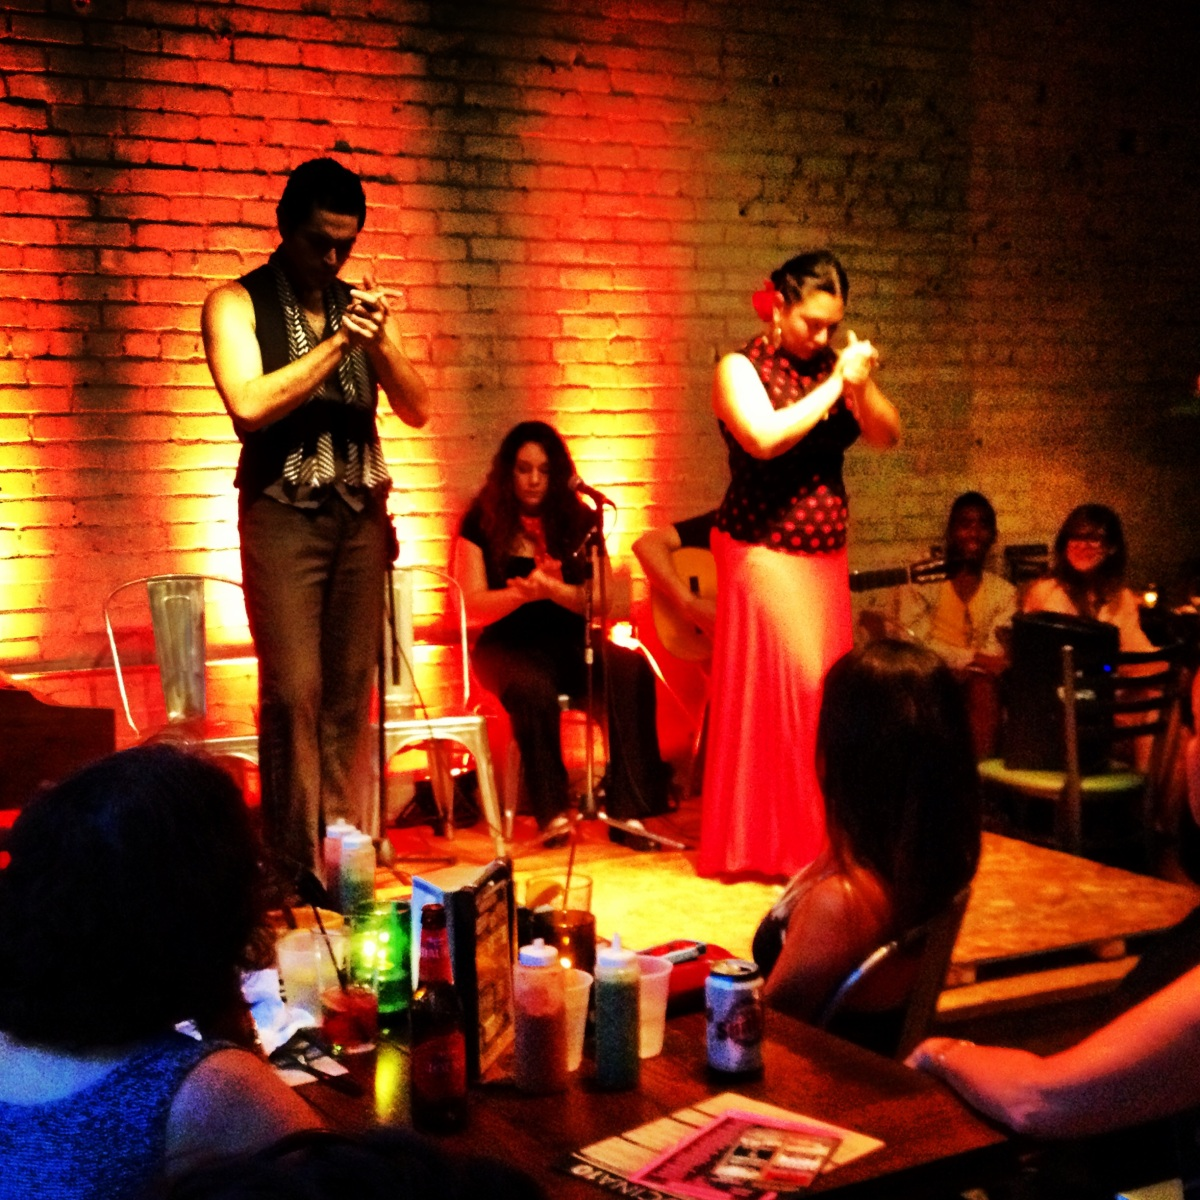 flamenco at the crescent ballroom in phoenix. {photo credit: @chrisadamsdsgn via instagram}